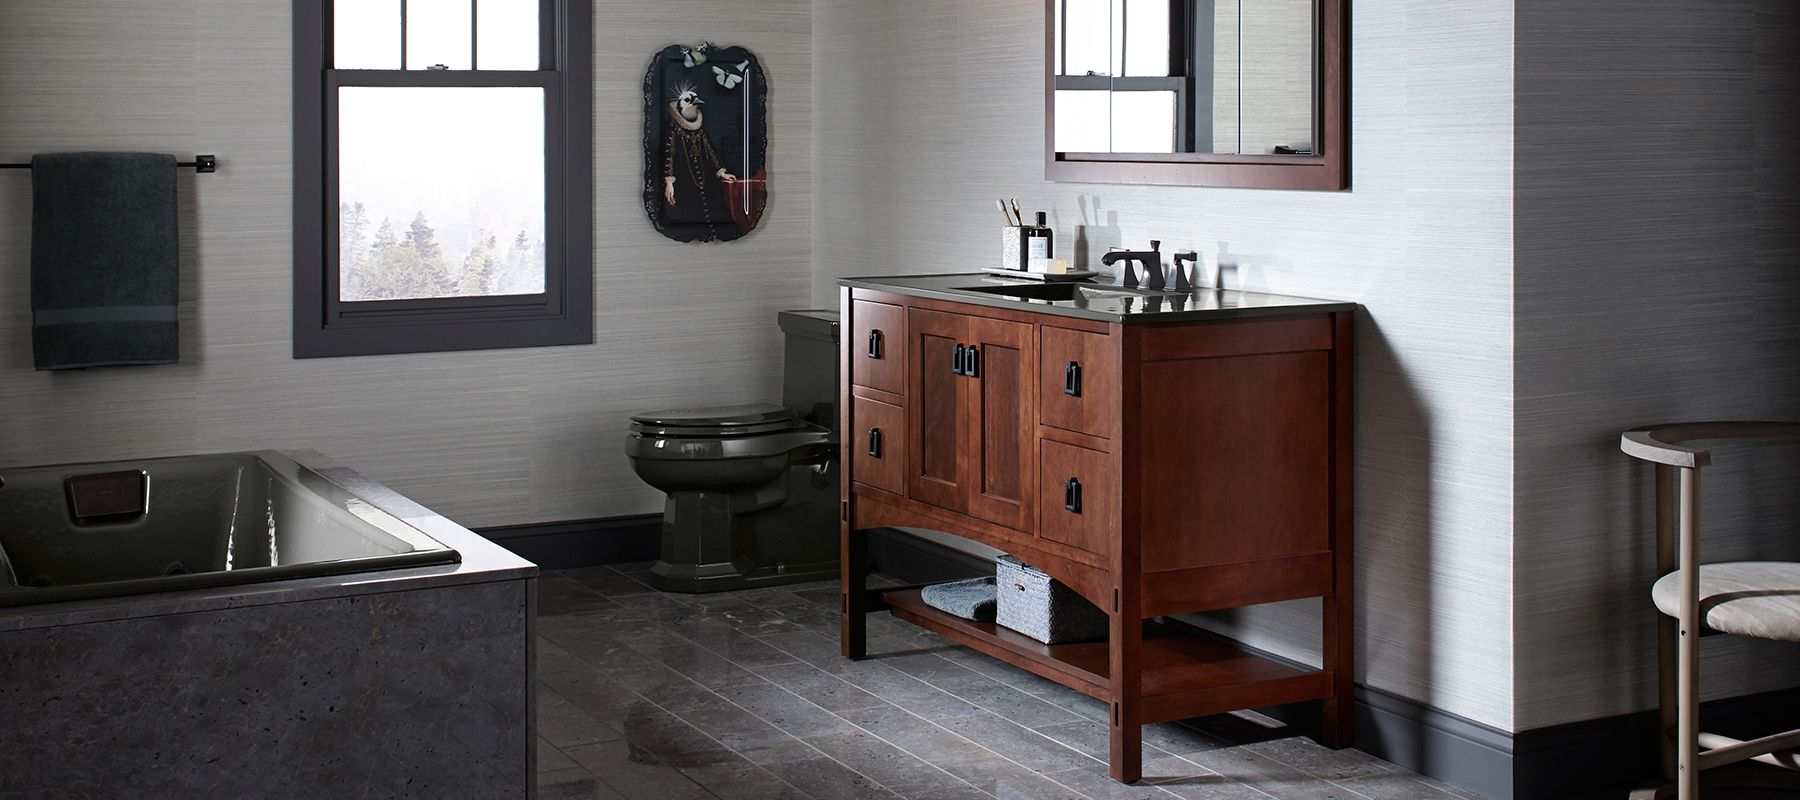 Bathroom sink designs pictures - Bathroom Storage Styling Ideas